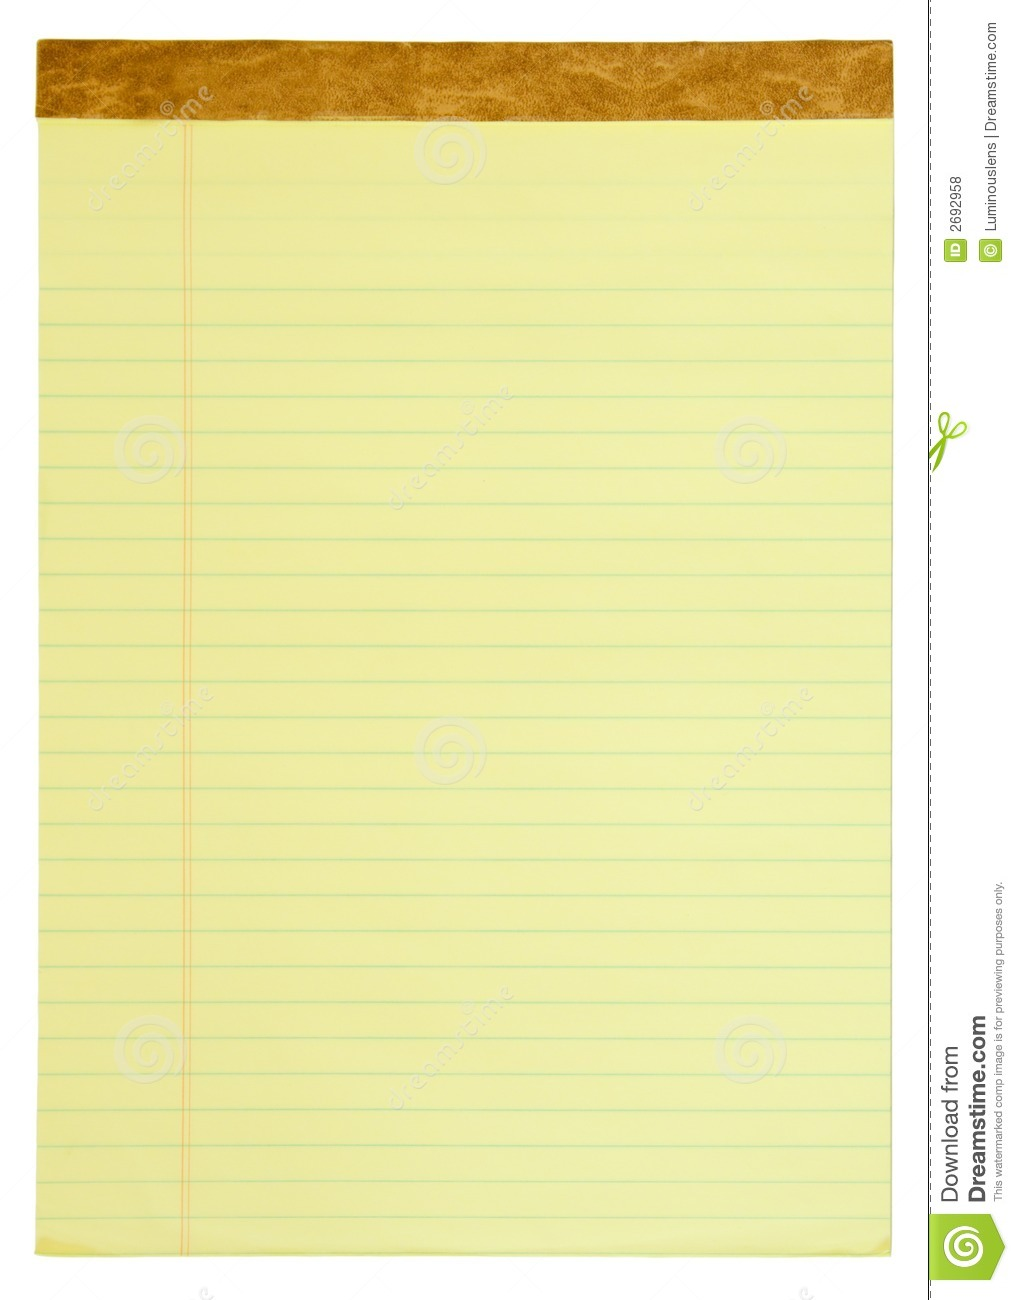 Yellow Lined Legal Pad Royalty Free Stock Photos - Image: 2692958